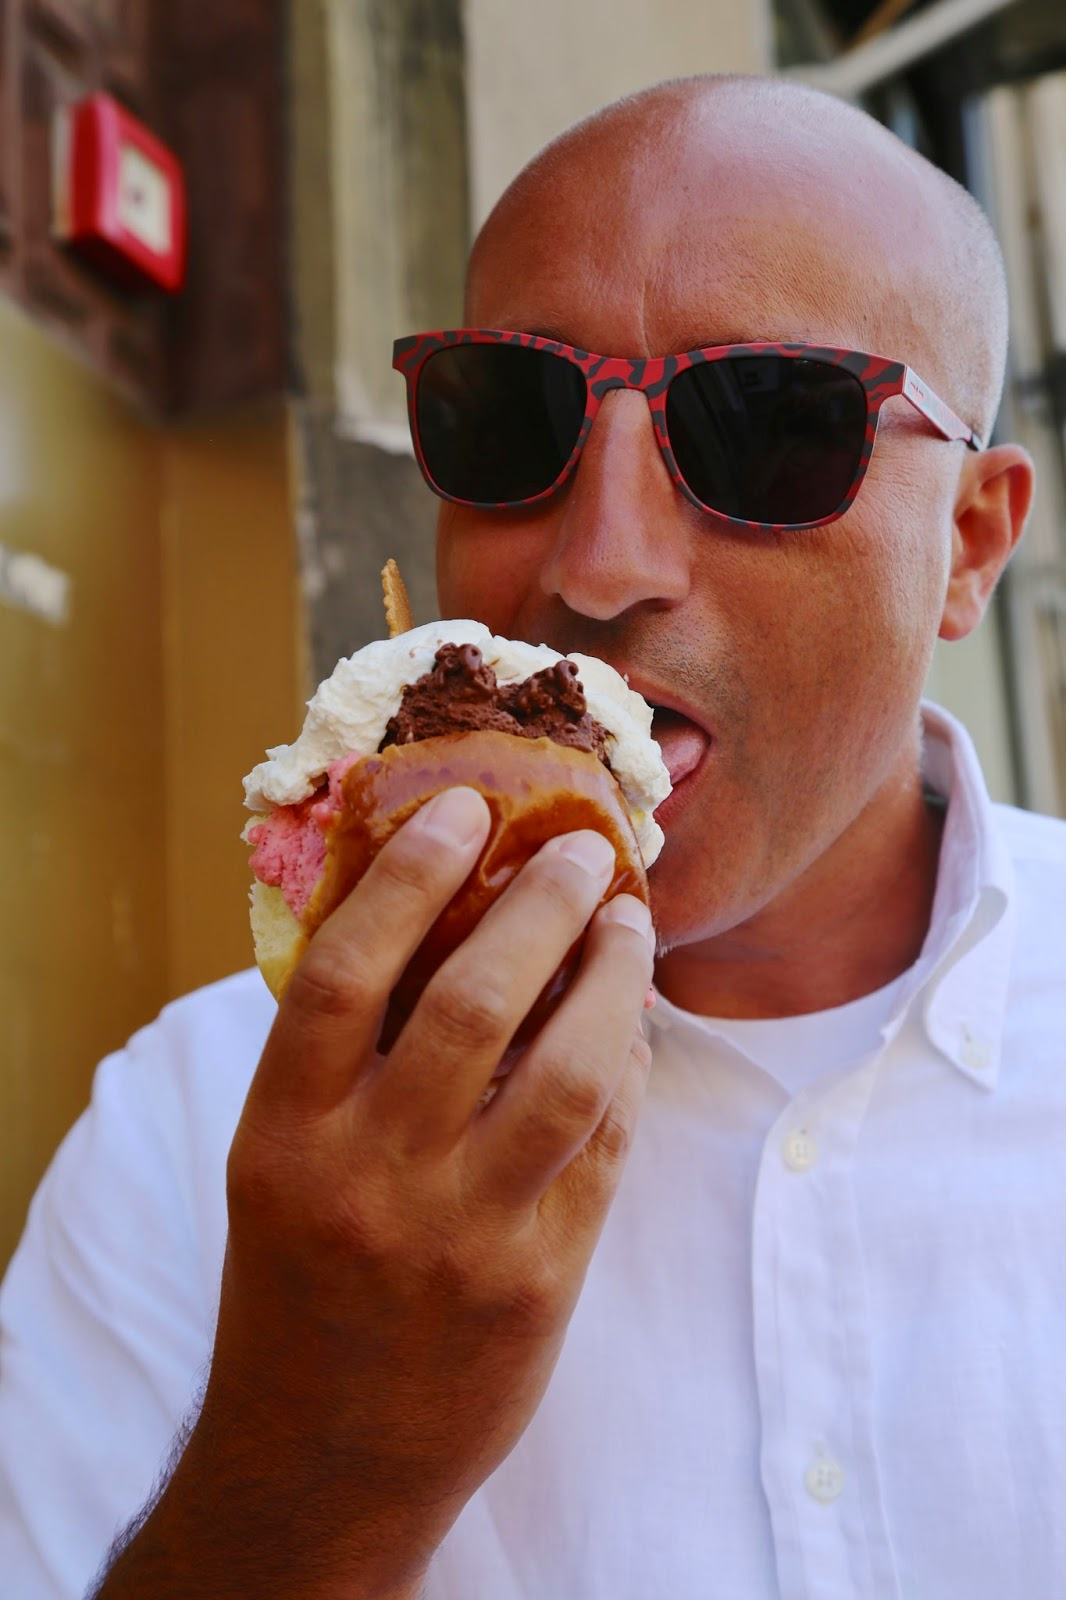 Sicilian eating ice cream sandwich, Palermo, Sicily